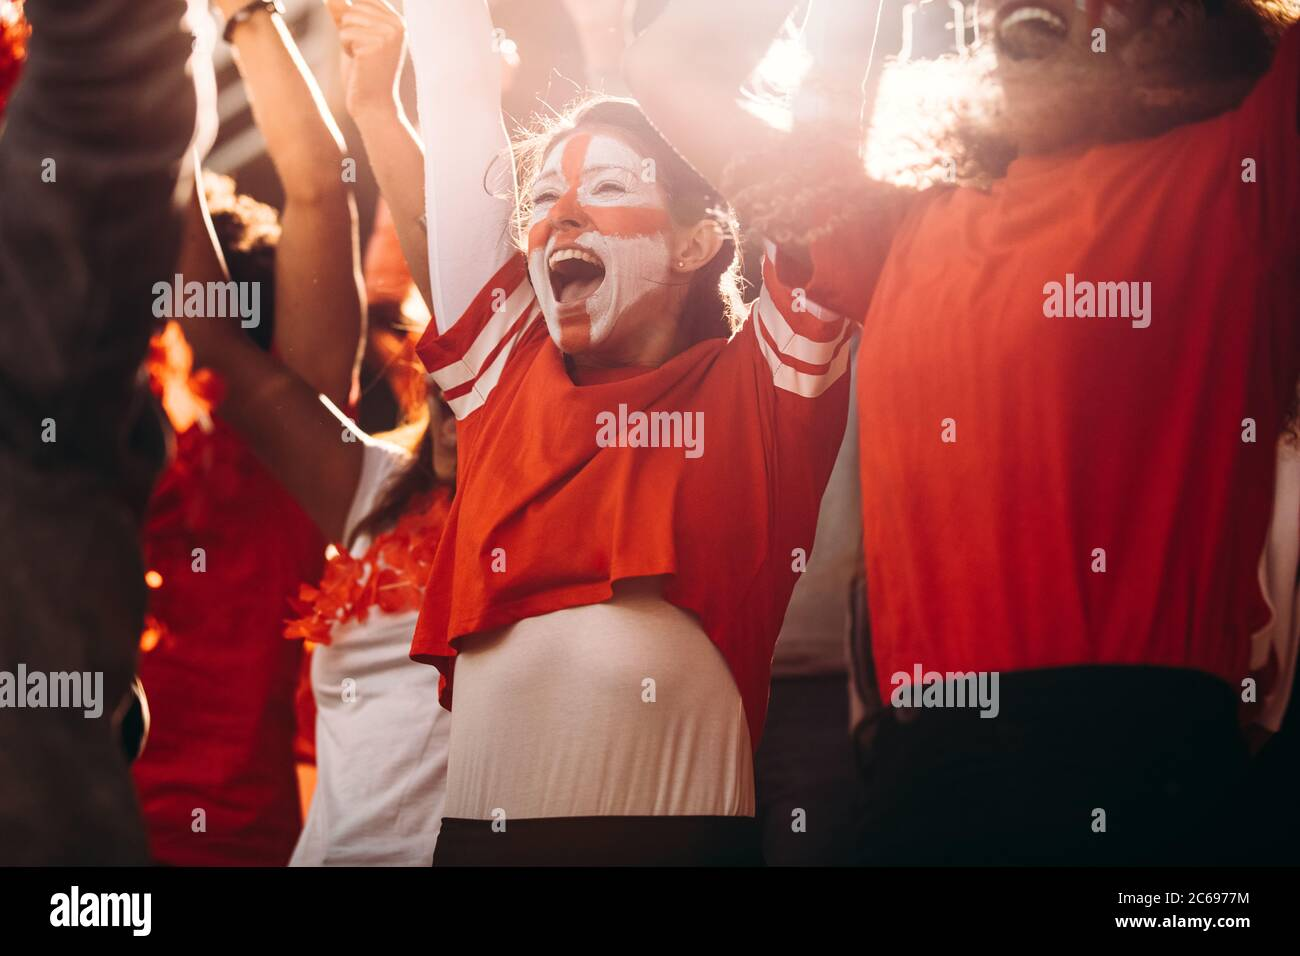 Excited England soccer fans celebrating in stands. English football supporters cheering over a goal in stadium. Stock Photo